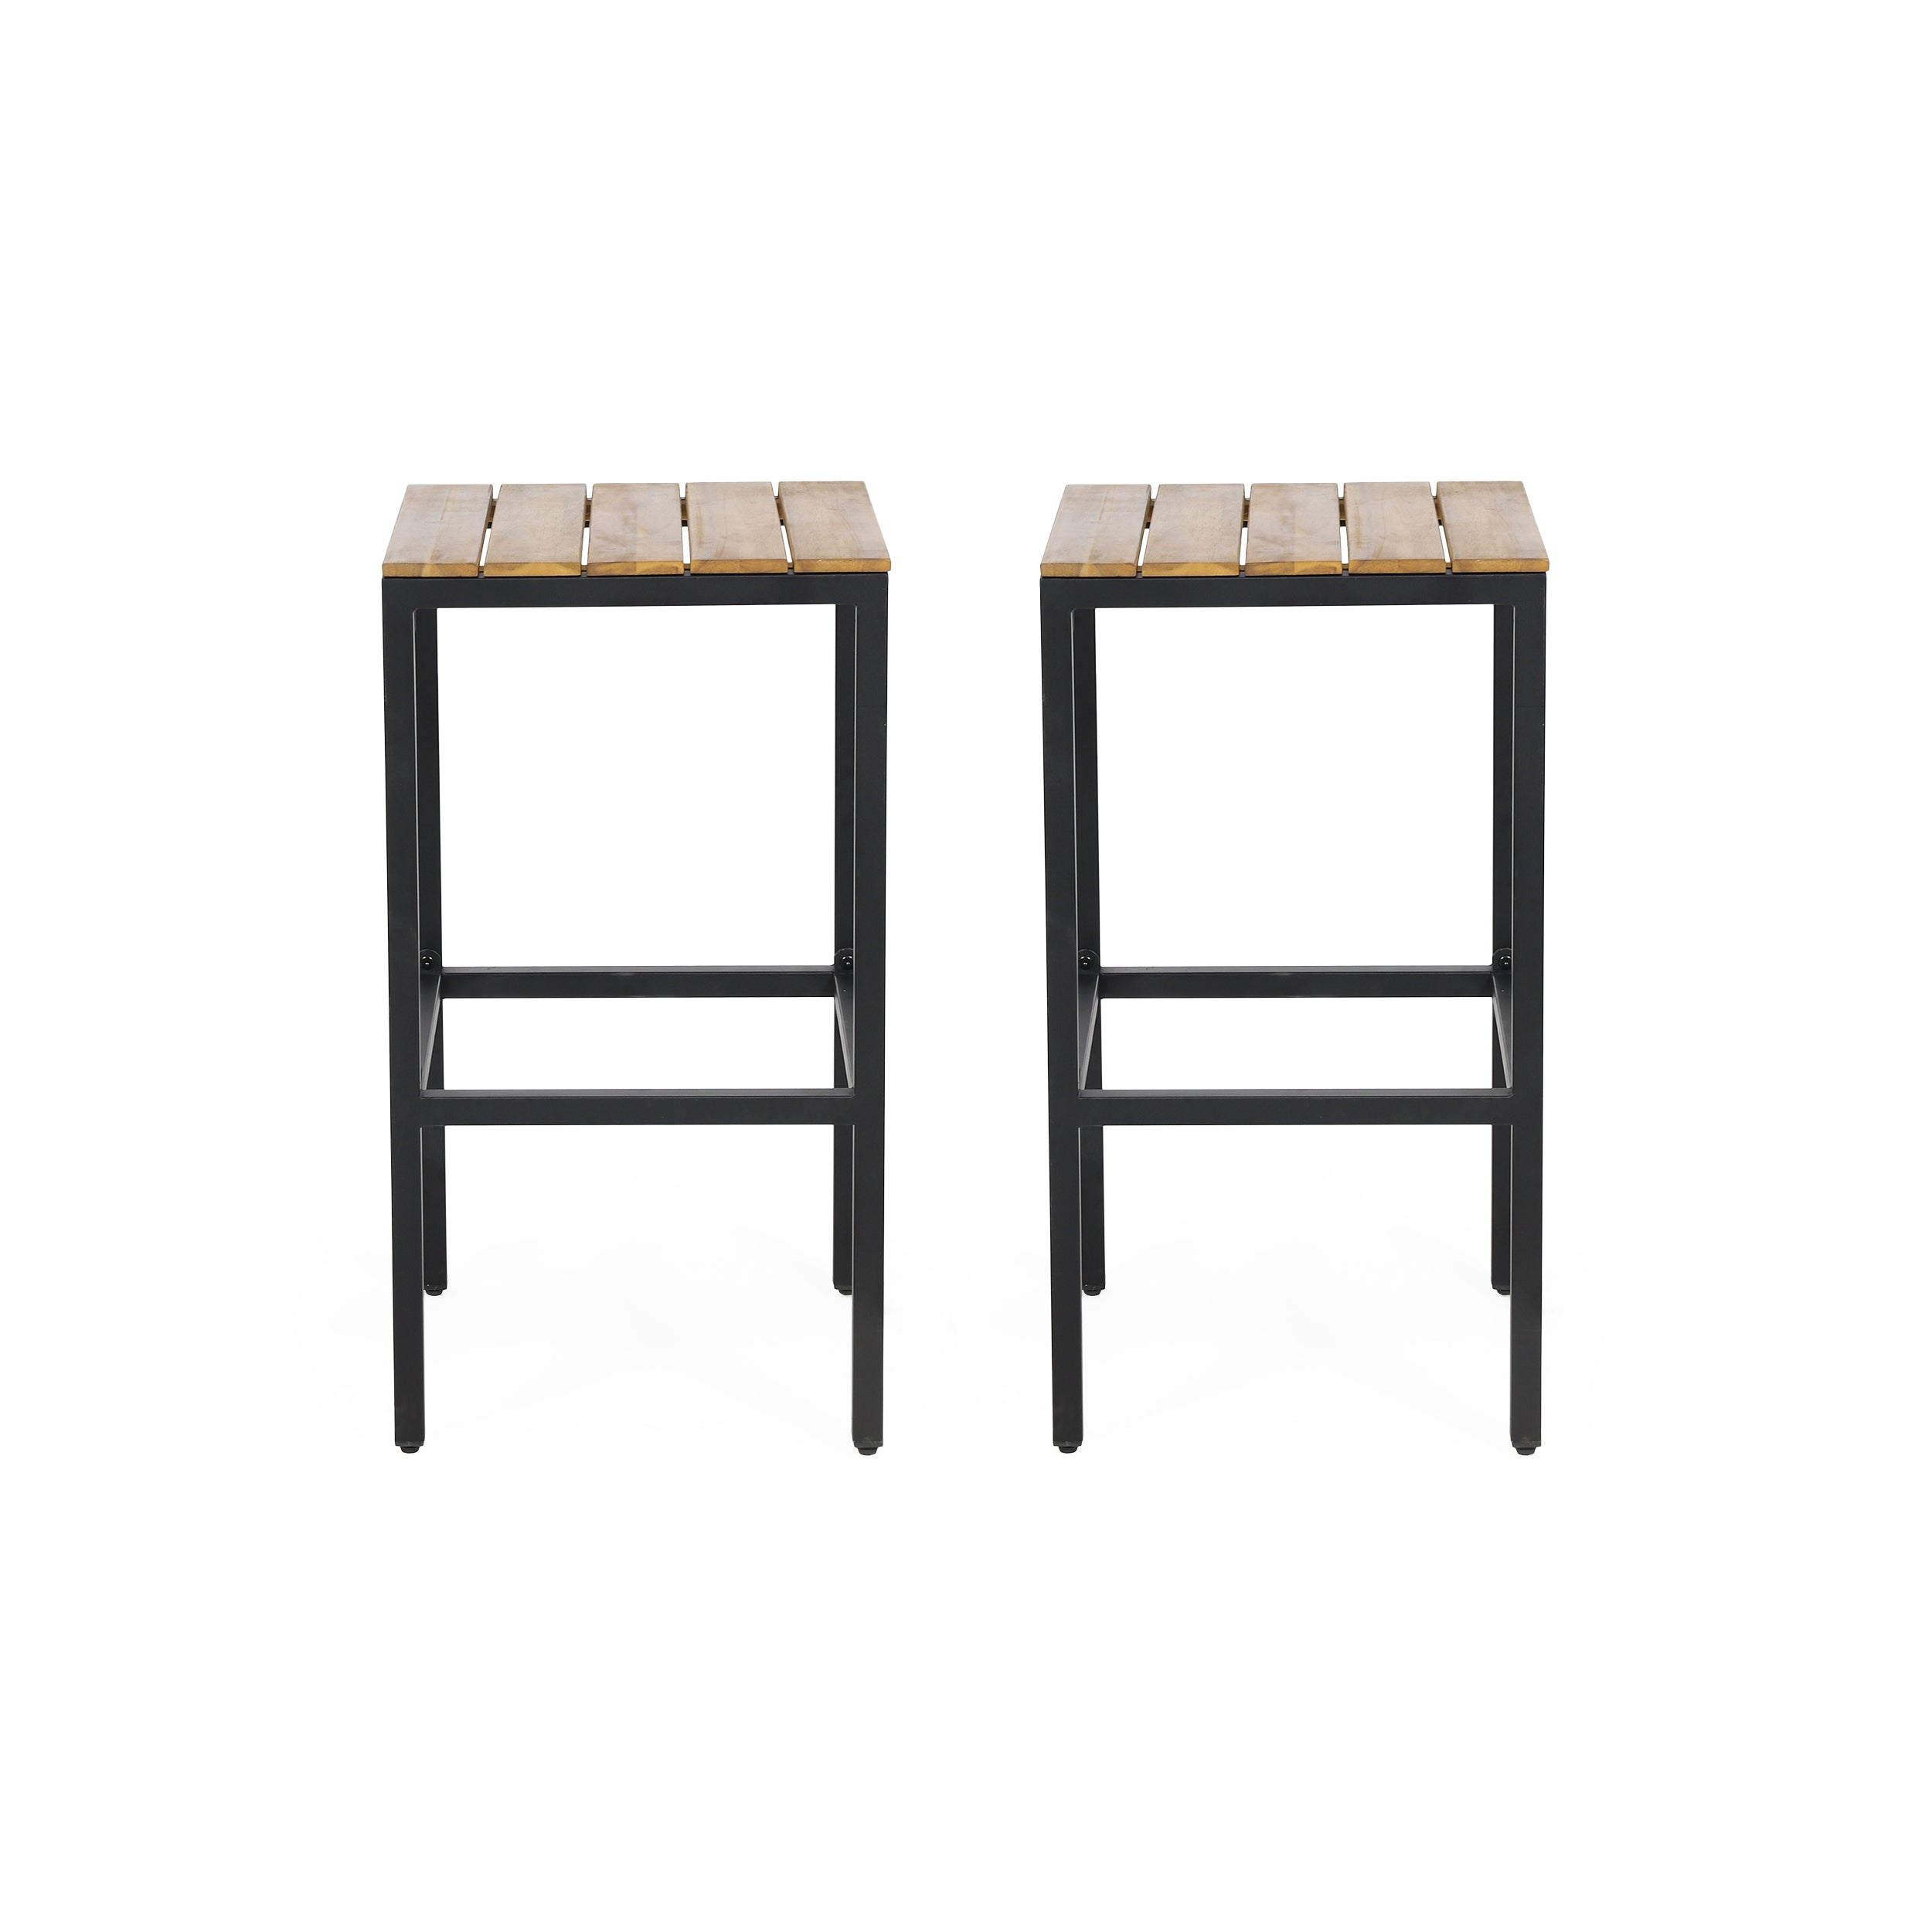 Arath Outdoor Modern Industrial Acacia Wood Bar Stools Set of 2 BlackTeak